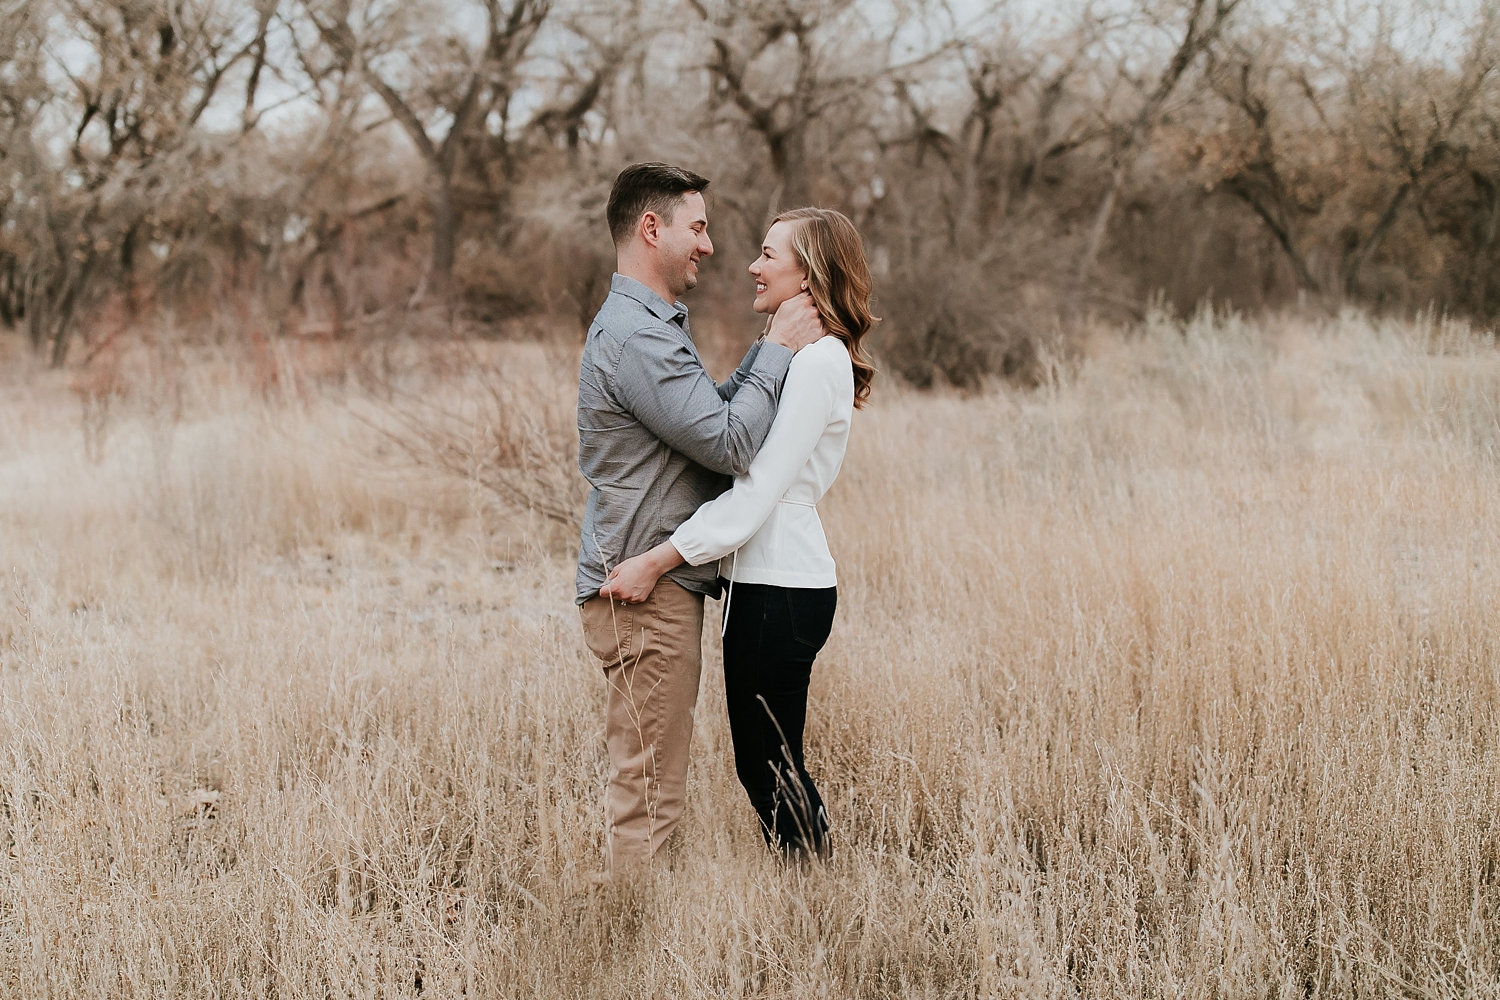 Alicia+lucia+photography+-+albuquerque+wedding+photographer+-+santa+fe+wedding+photography+-+new+mexico+wedding+photographer+-+new+mexico+engagement+-+albuquerque+engagement+-+spring+new+mexico+engagement+-+bosque+engagement_0014.jpg